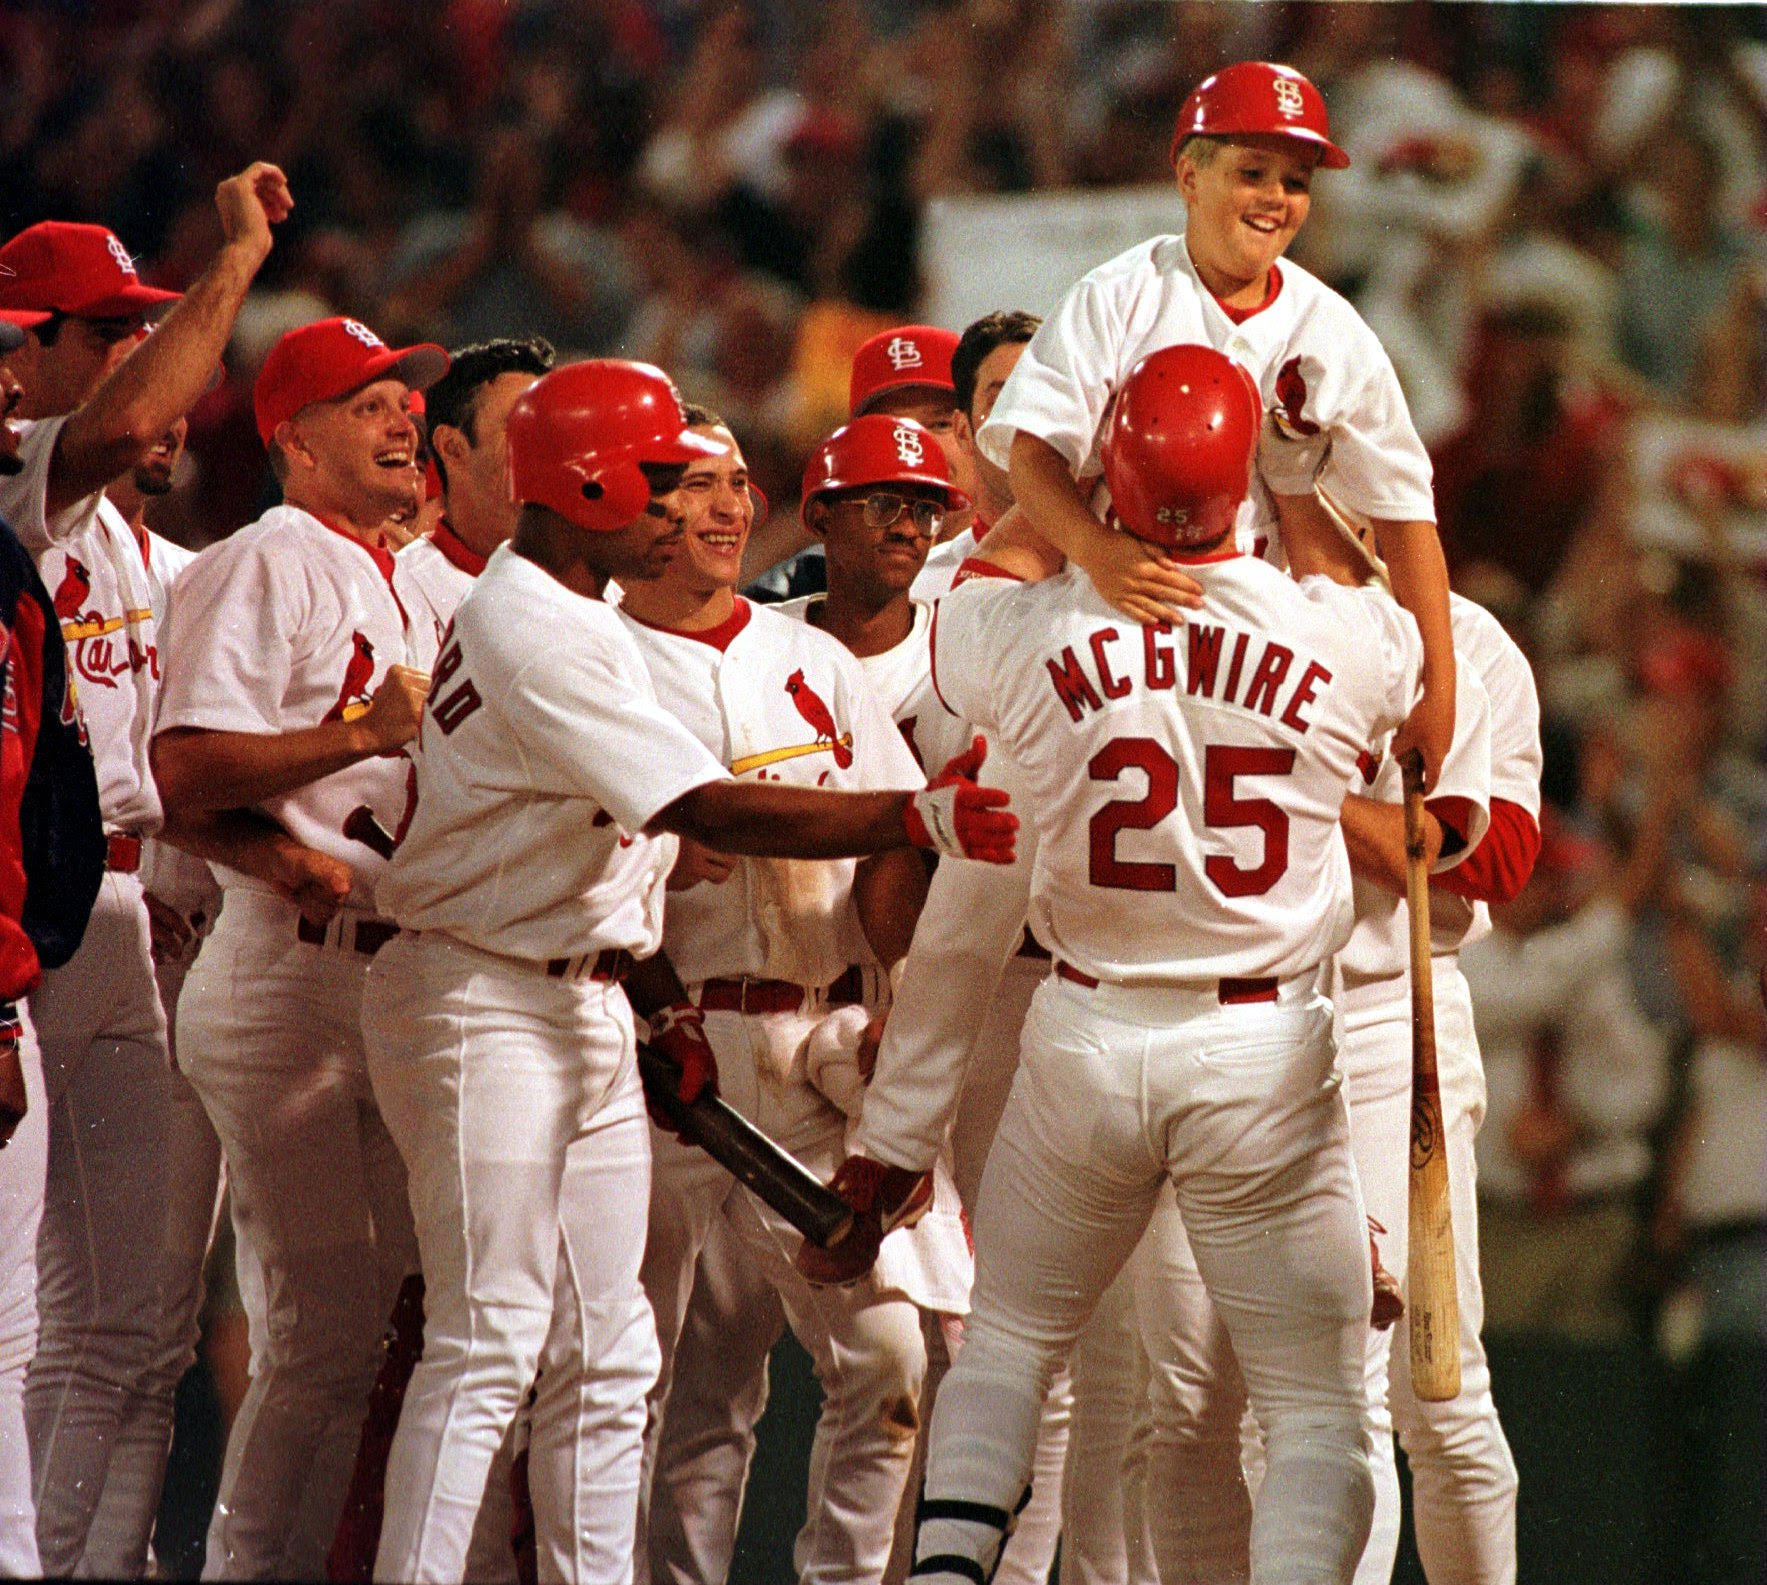 Views of mcgwire and his record have changed 20 years after home run st louis cardinals first baseman mark mcgwire lifts his 10 year old son matt after hitting his 62nd home run of the 1998 season on sept 8 1998 breaking m4hsunfo